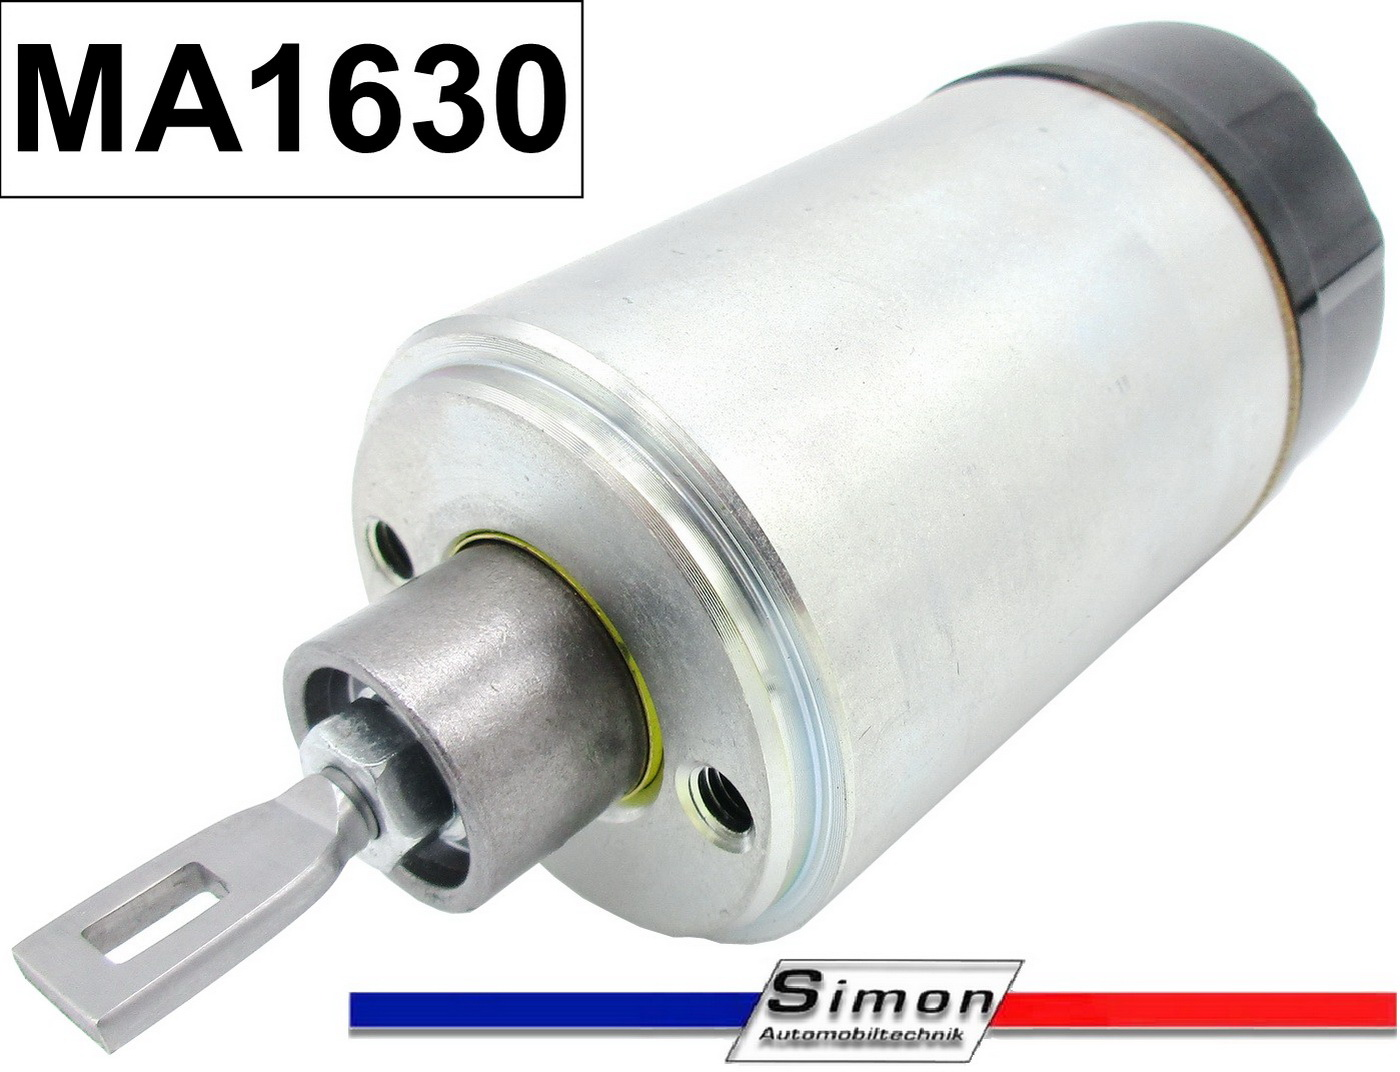 Solenoid starter 6 Volt for VW Käfer, NSU, Porsche